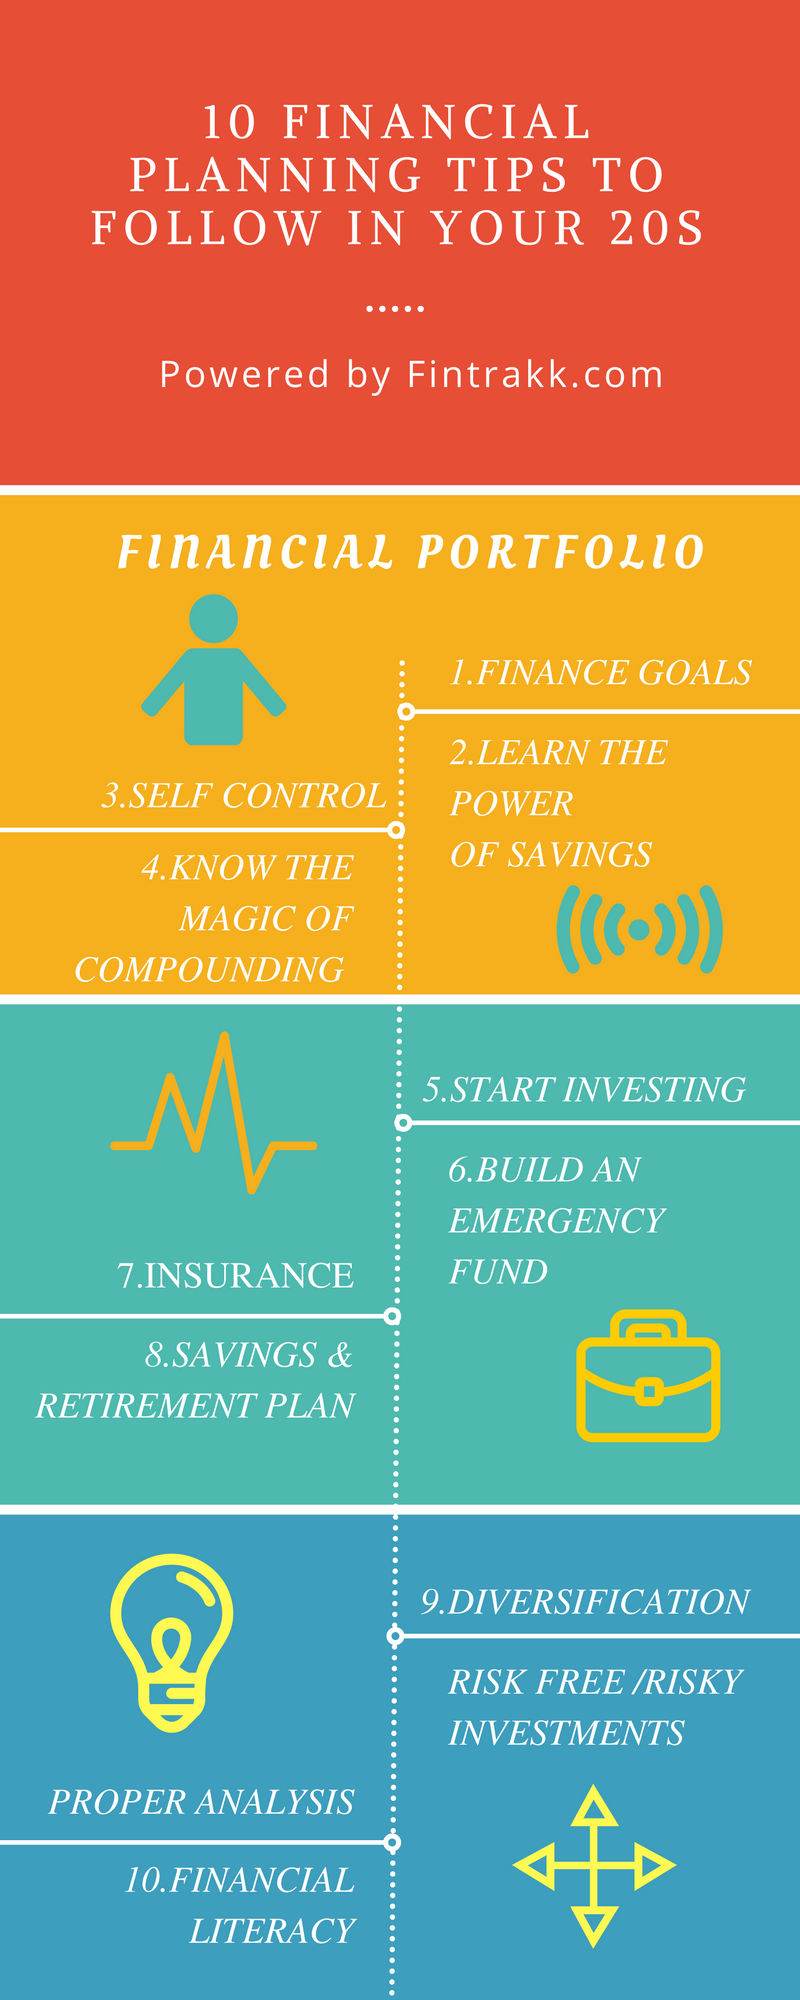 Financial tips Infographic,financial tips,financial planning in 20s,financial planning Infographic,Investment tips